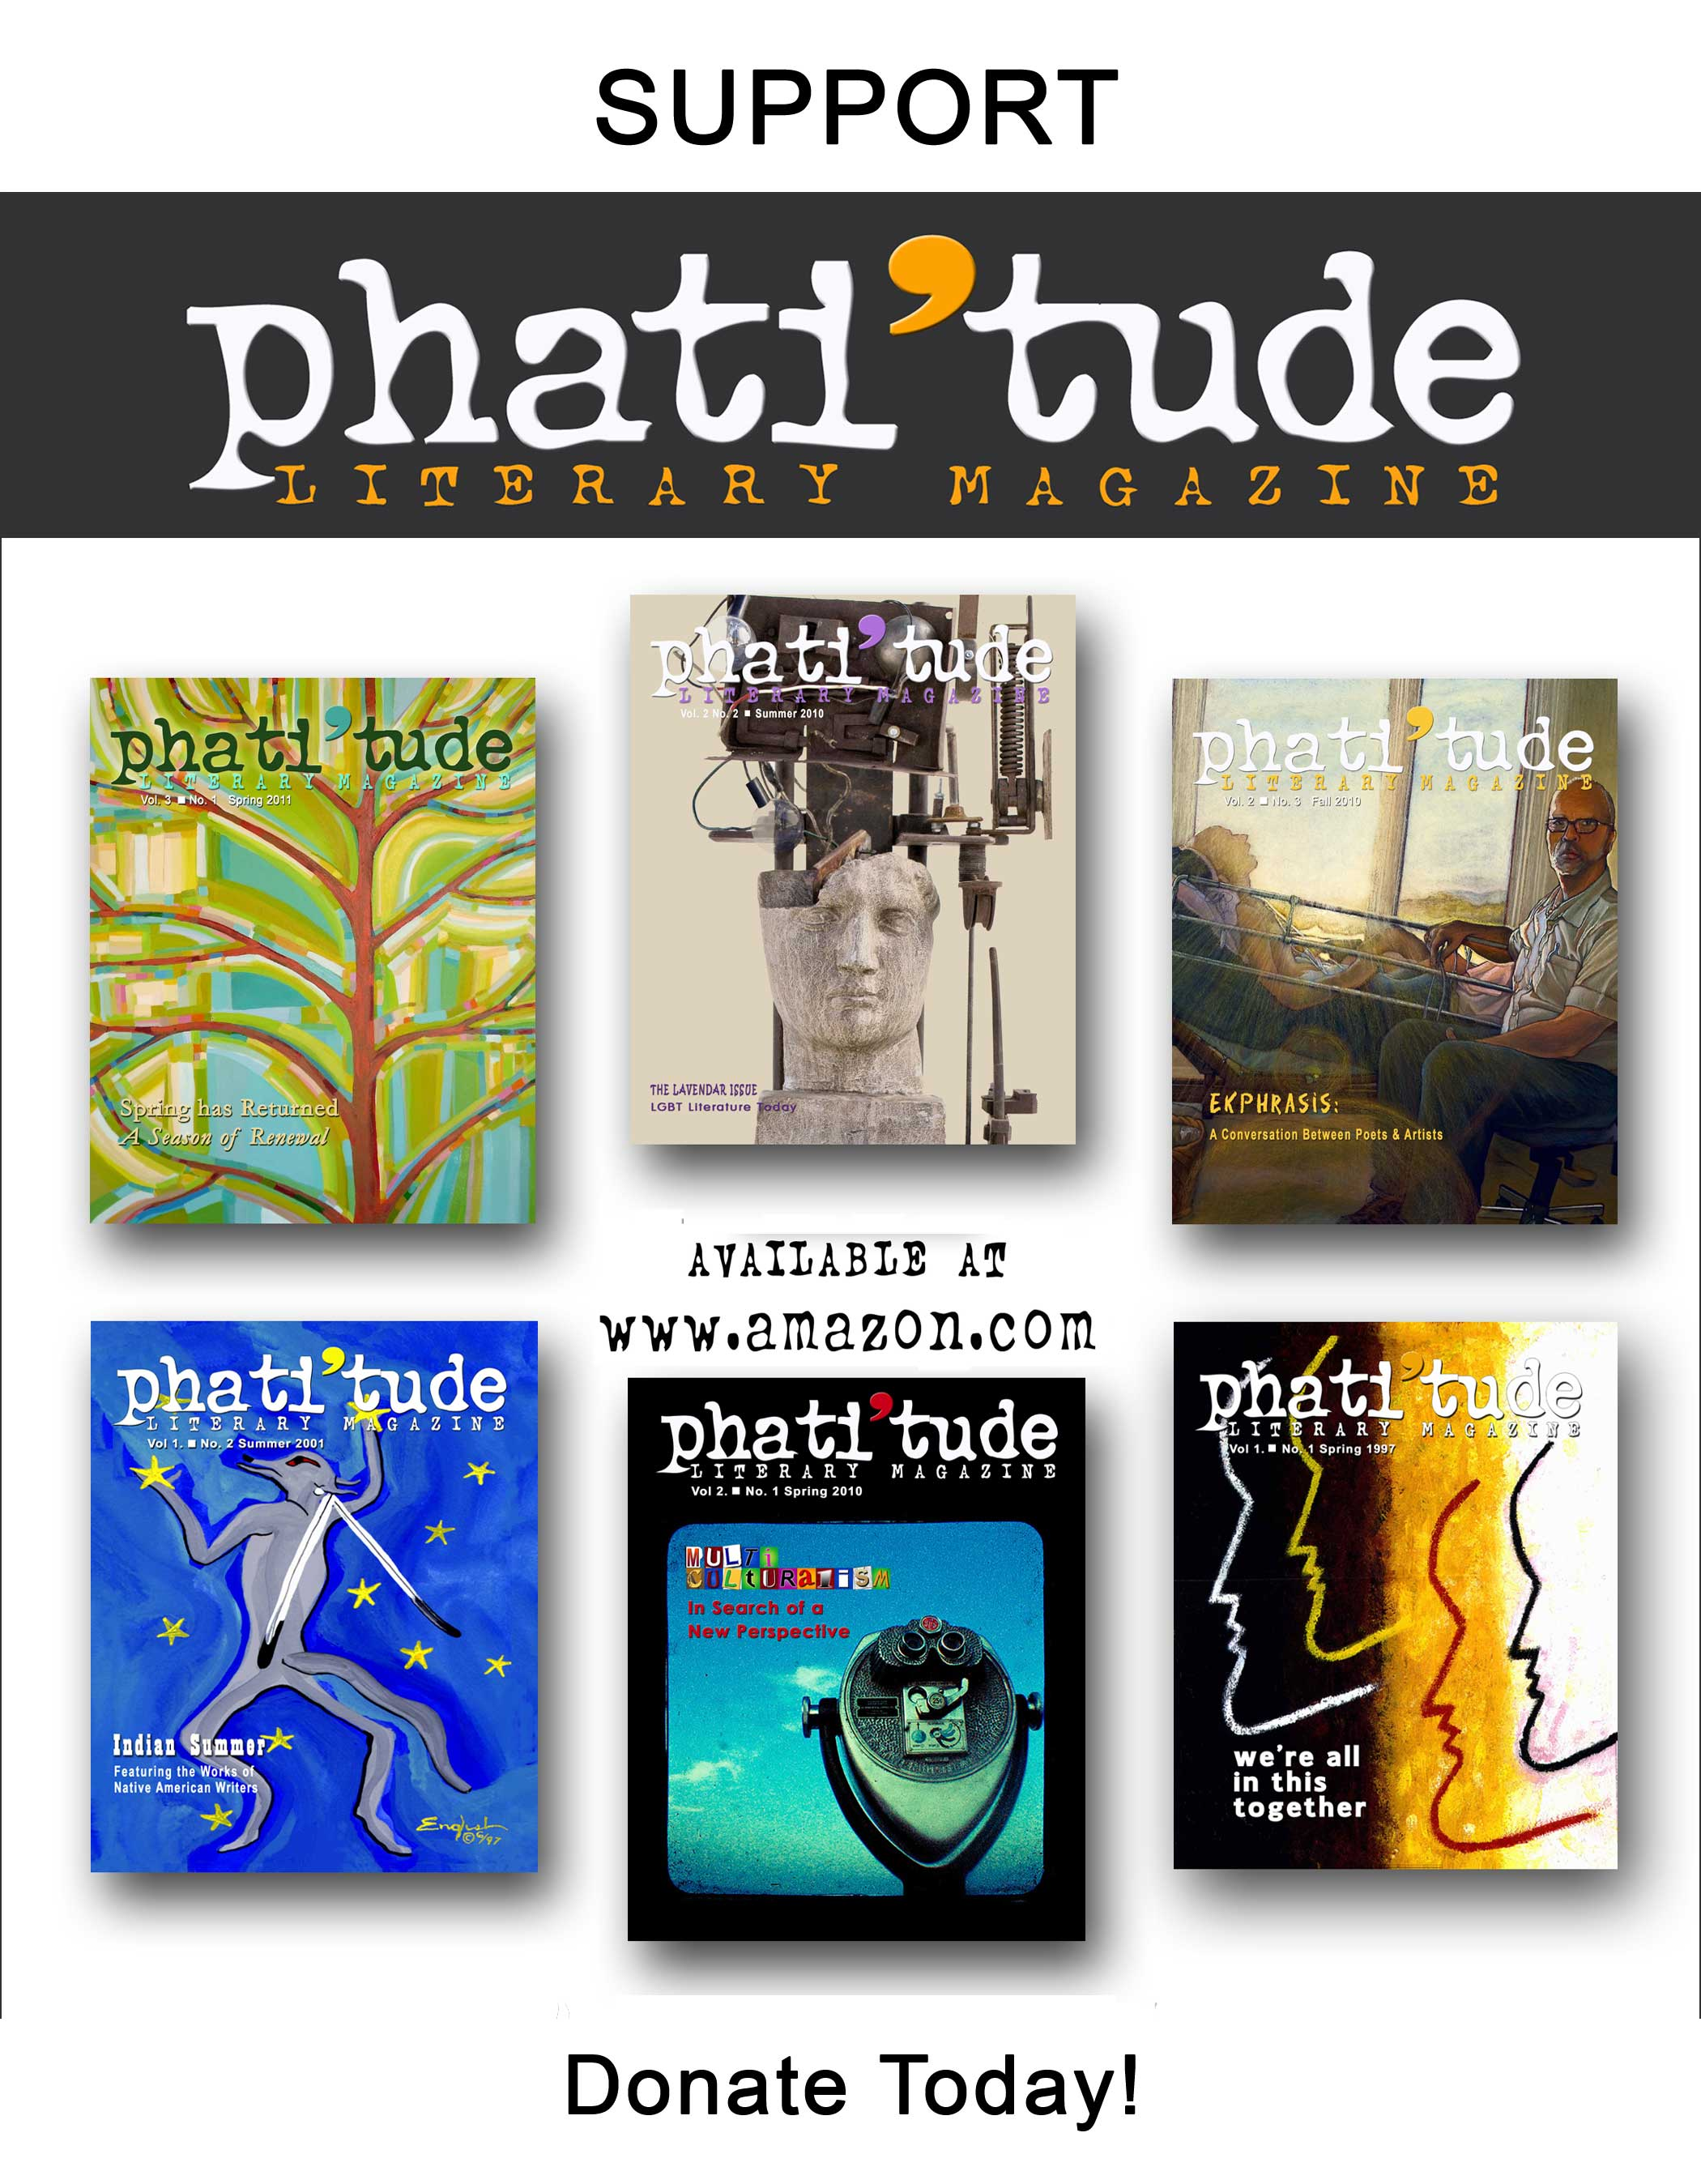 phati'tude magazine covers